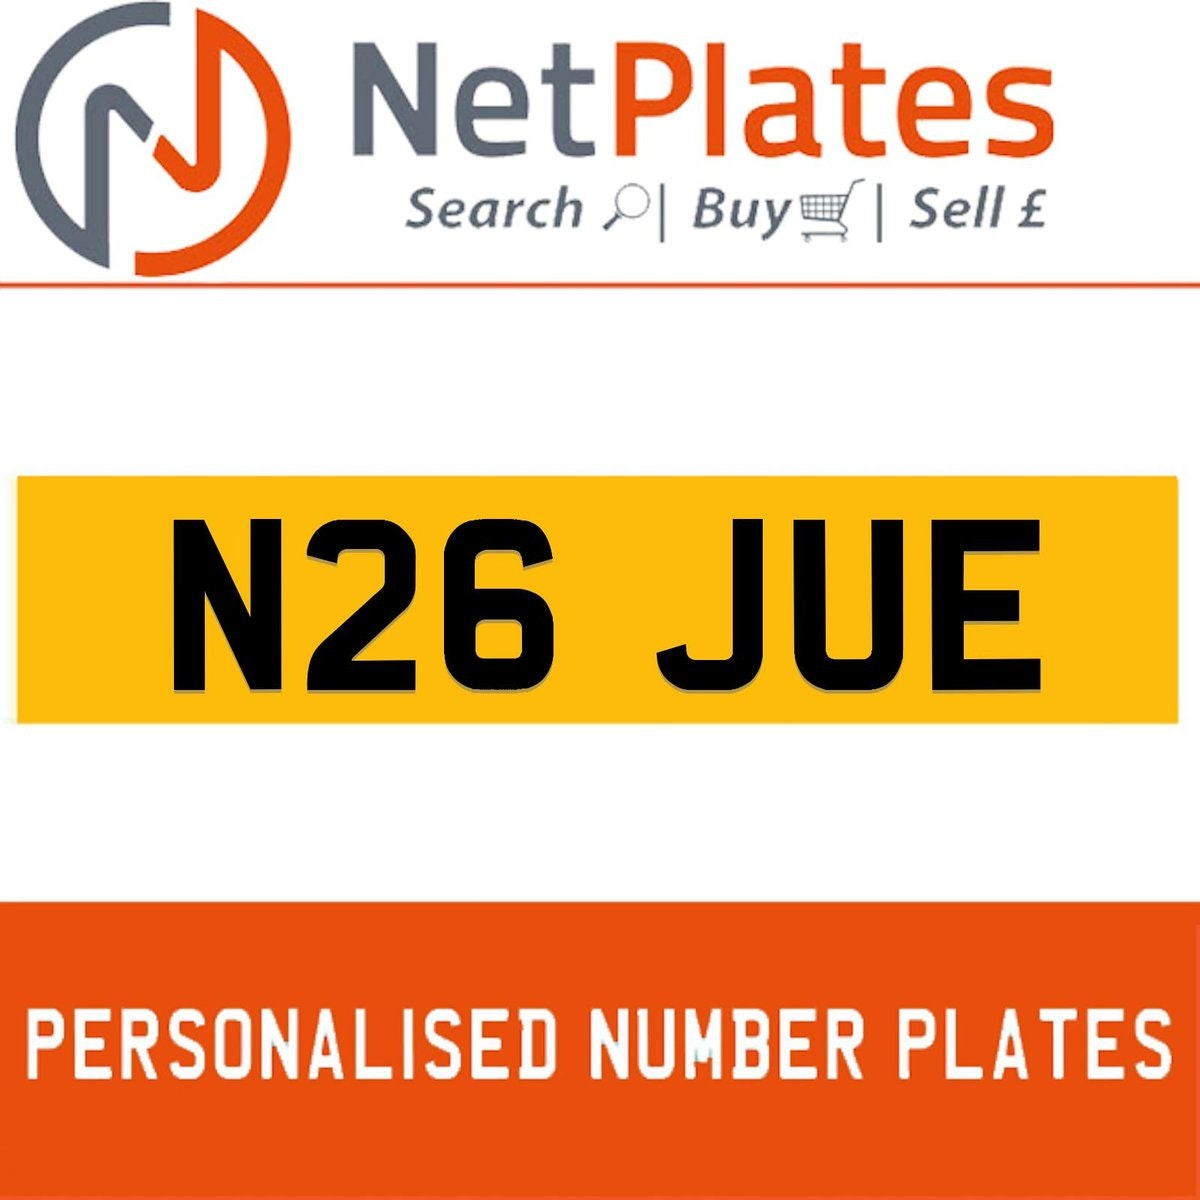 N26 JUE PERSONALISED PRIVATE CHERISHED DVLA NUMBER PLATE For Sale (picture 1 of 5)